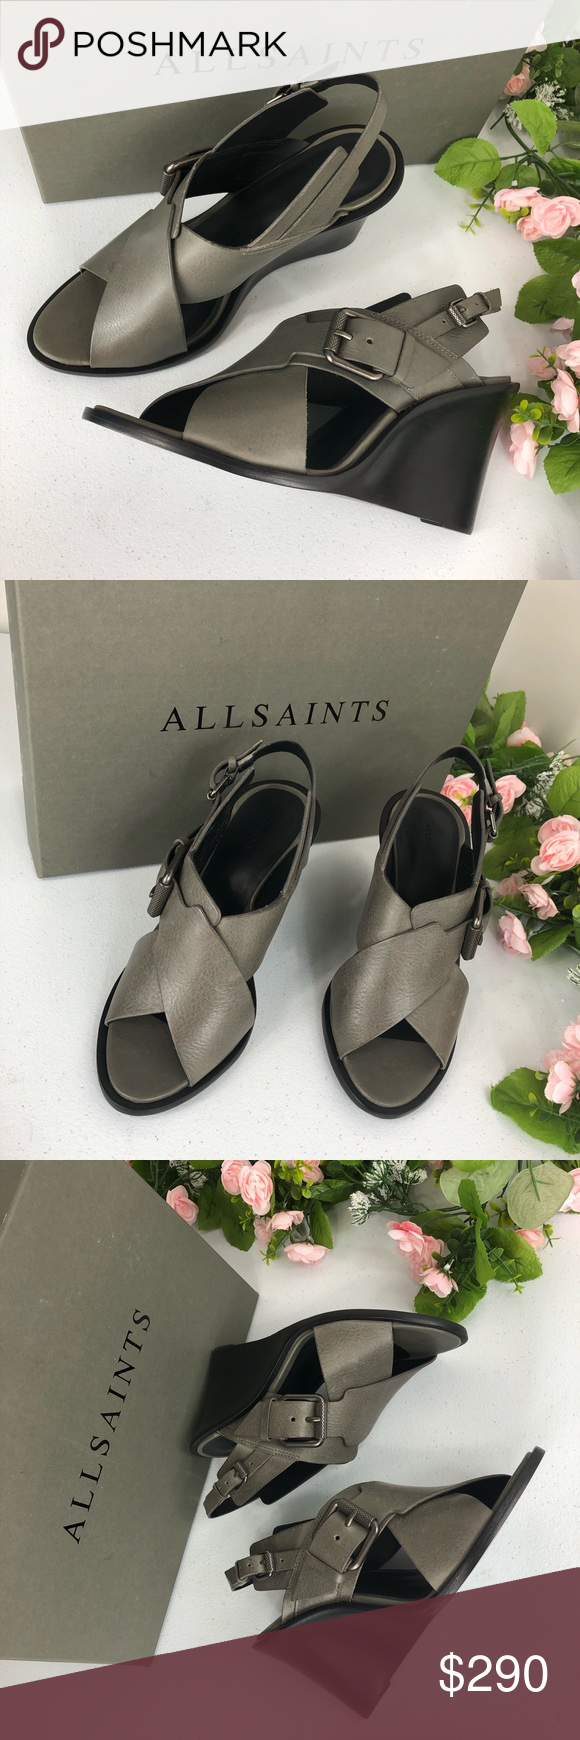 3bf8544333a3 Allsaints Elin wedge dark grey shoes size 36 (A7) New with box Allsaints  dark grey wedge sandals Elin size 36 ( Box A7) Made in Brazil Strappy  leather ...